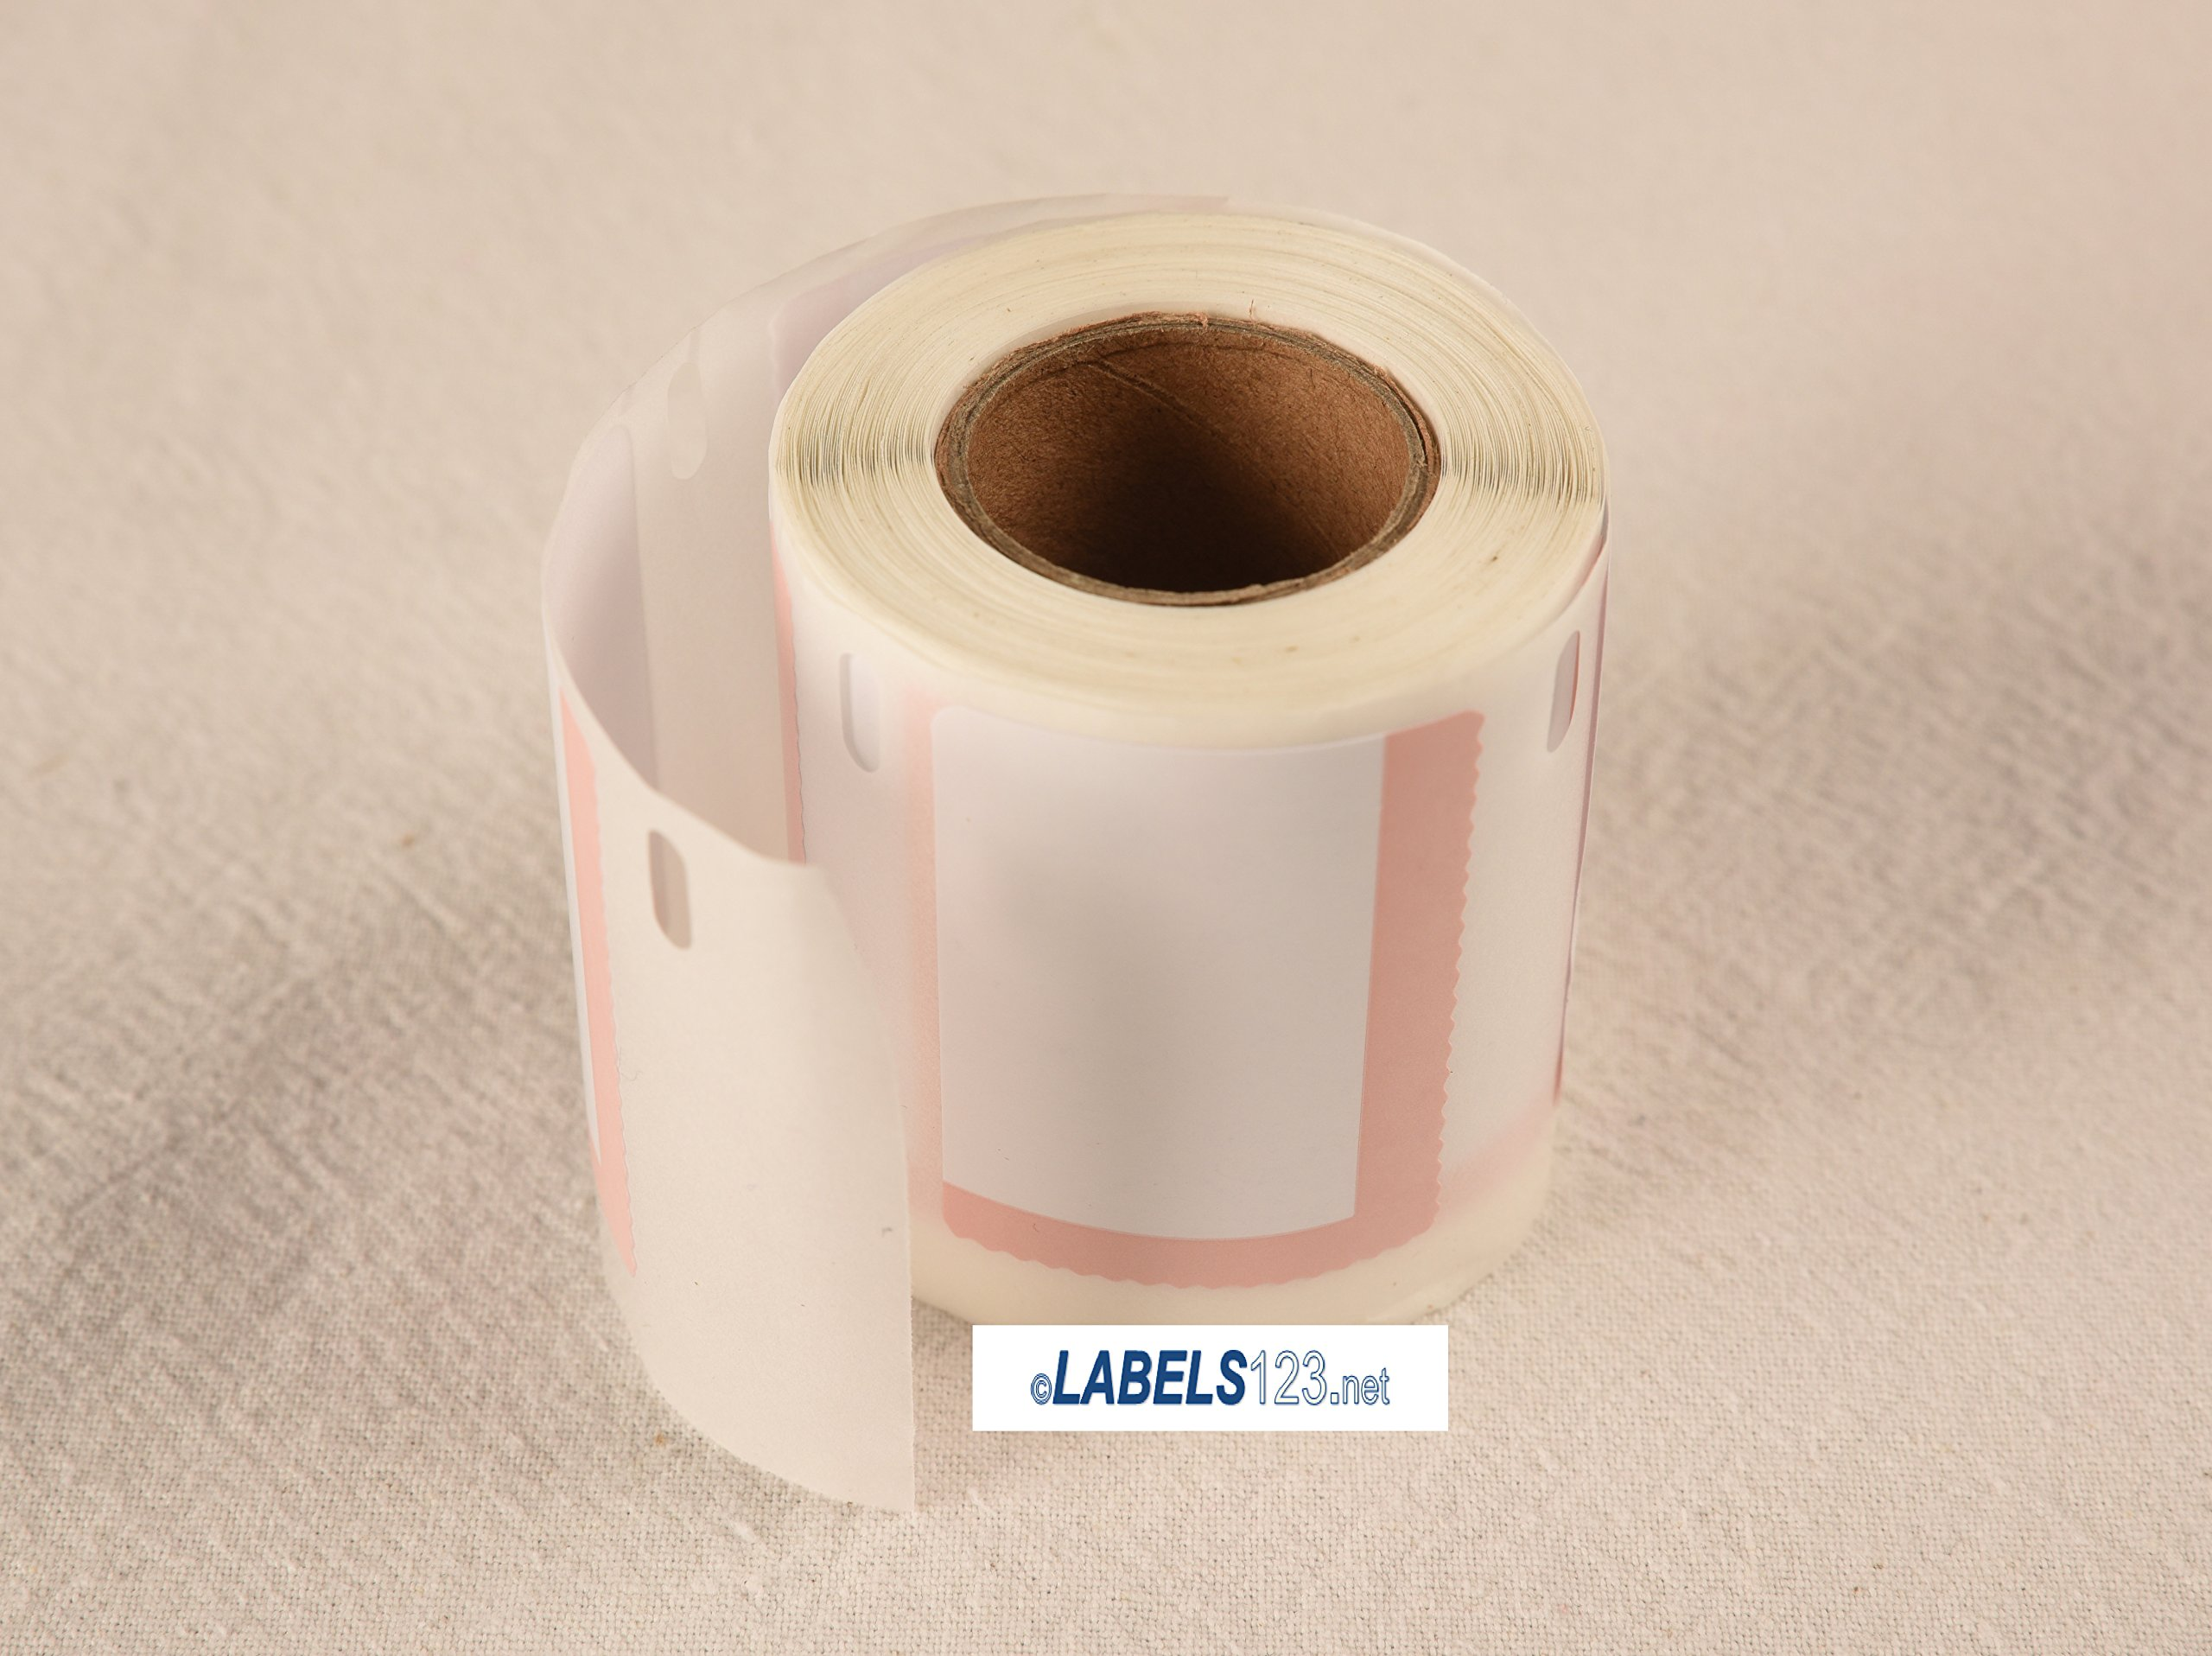 Thermal Labels 30915 Compatible w/ Dymo Internet Shipping USPS, Postage Stamps - 100 Rolls 700 P/R